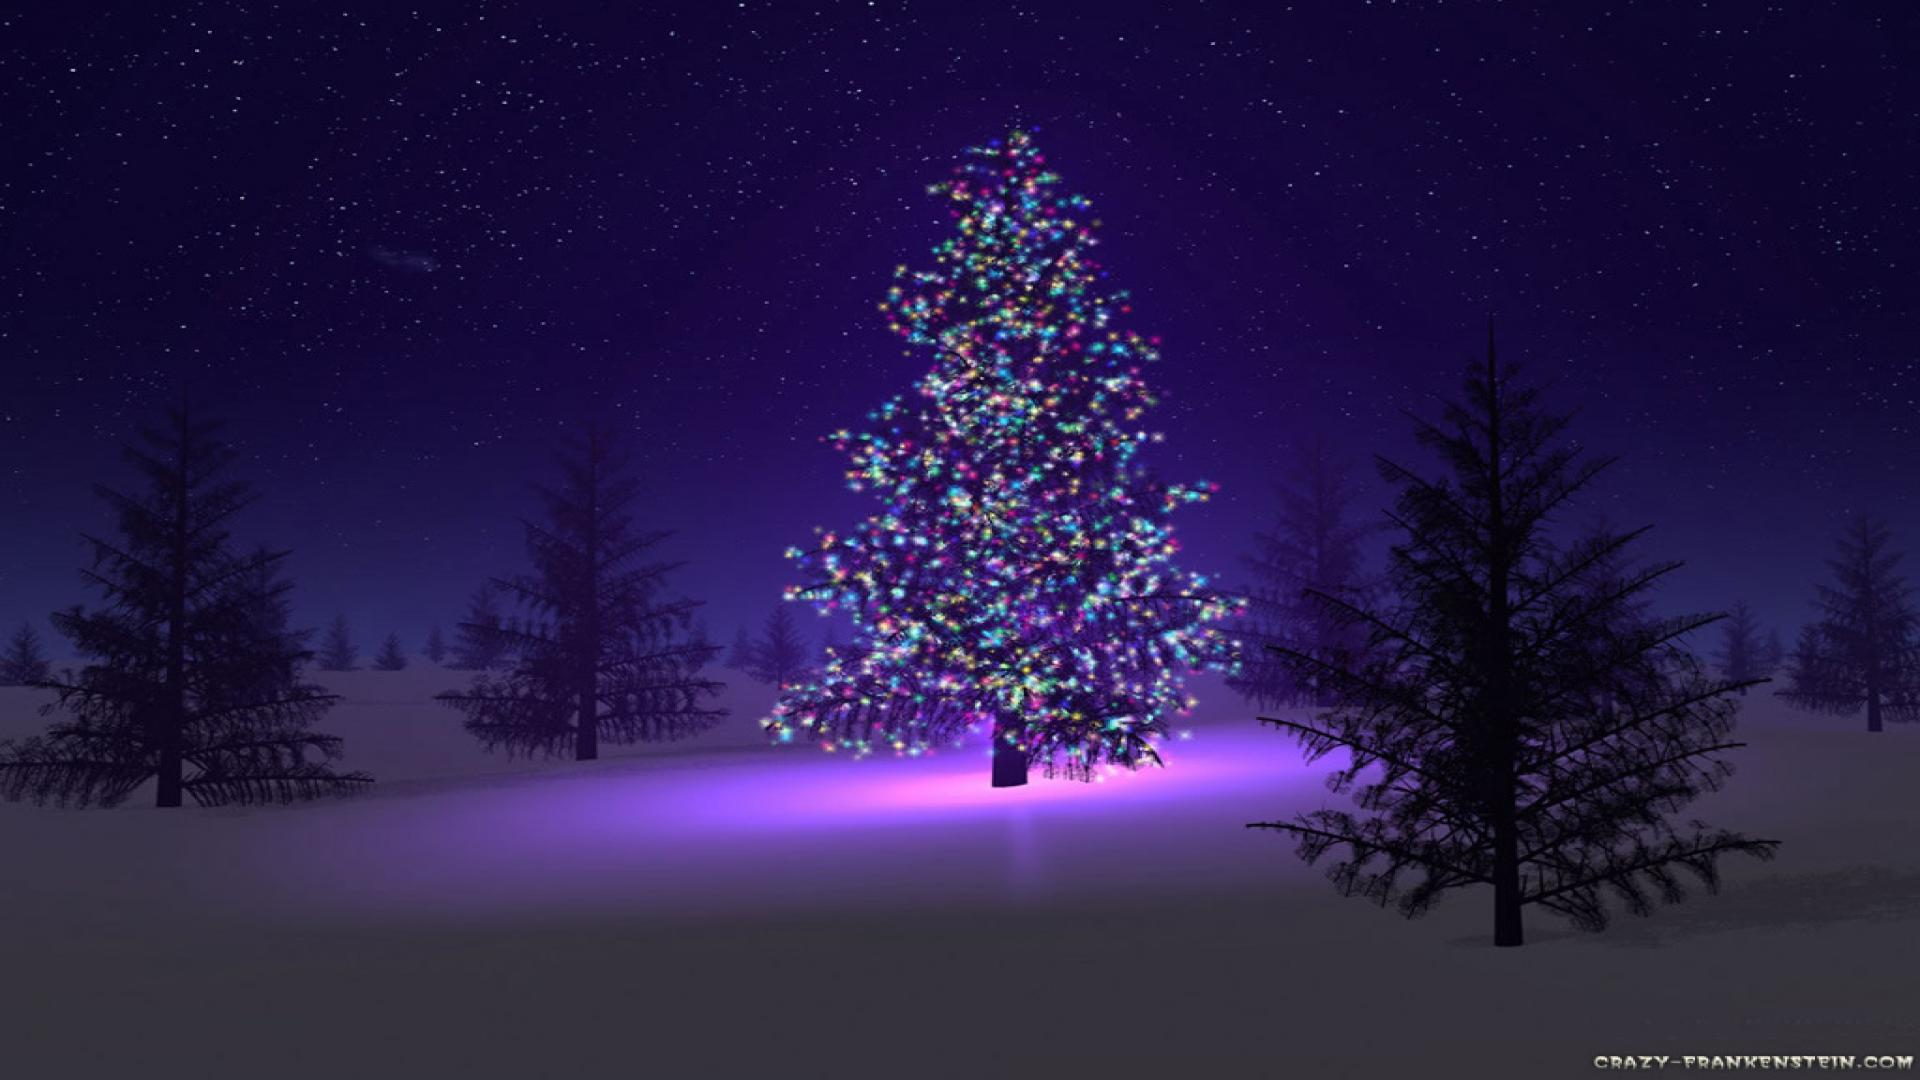 [44+] Christmas HD Widescreen Wallpaper 1920x1080 On